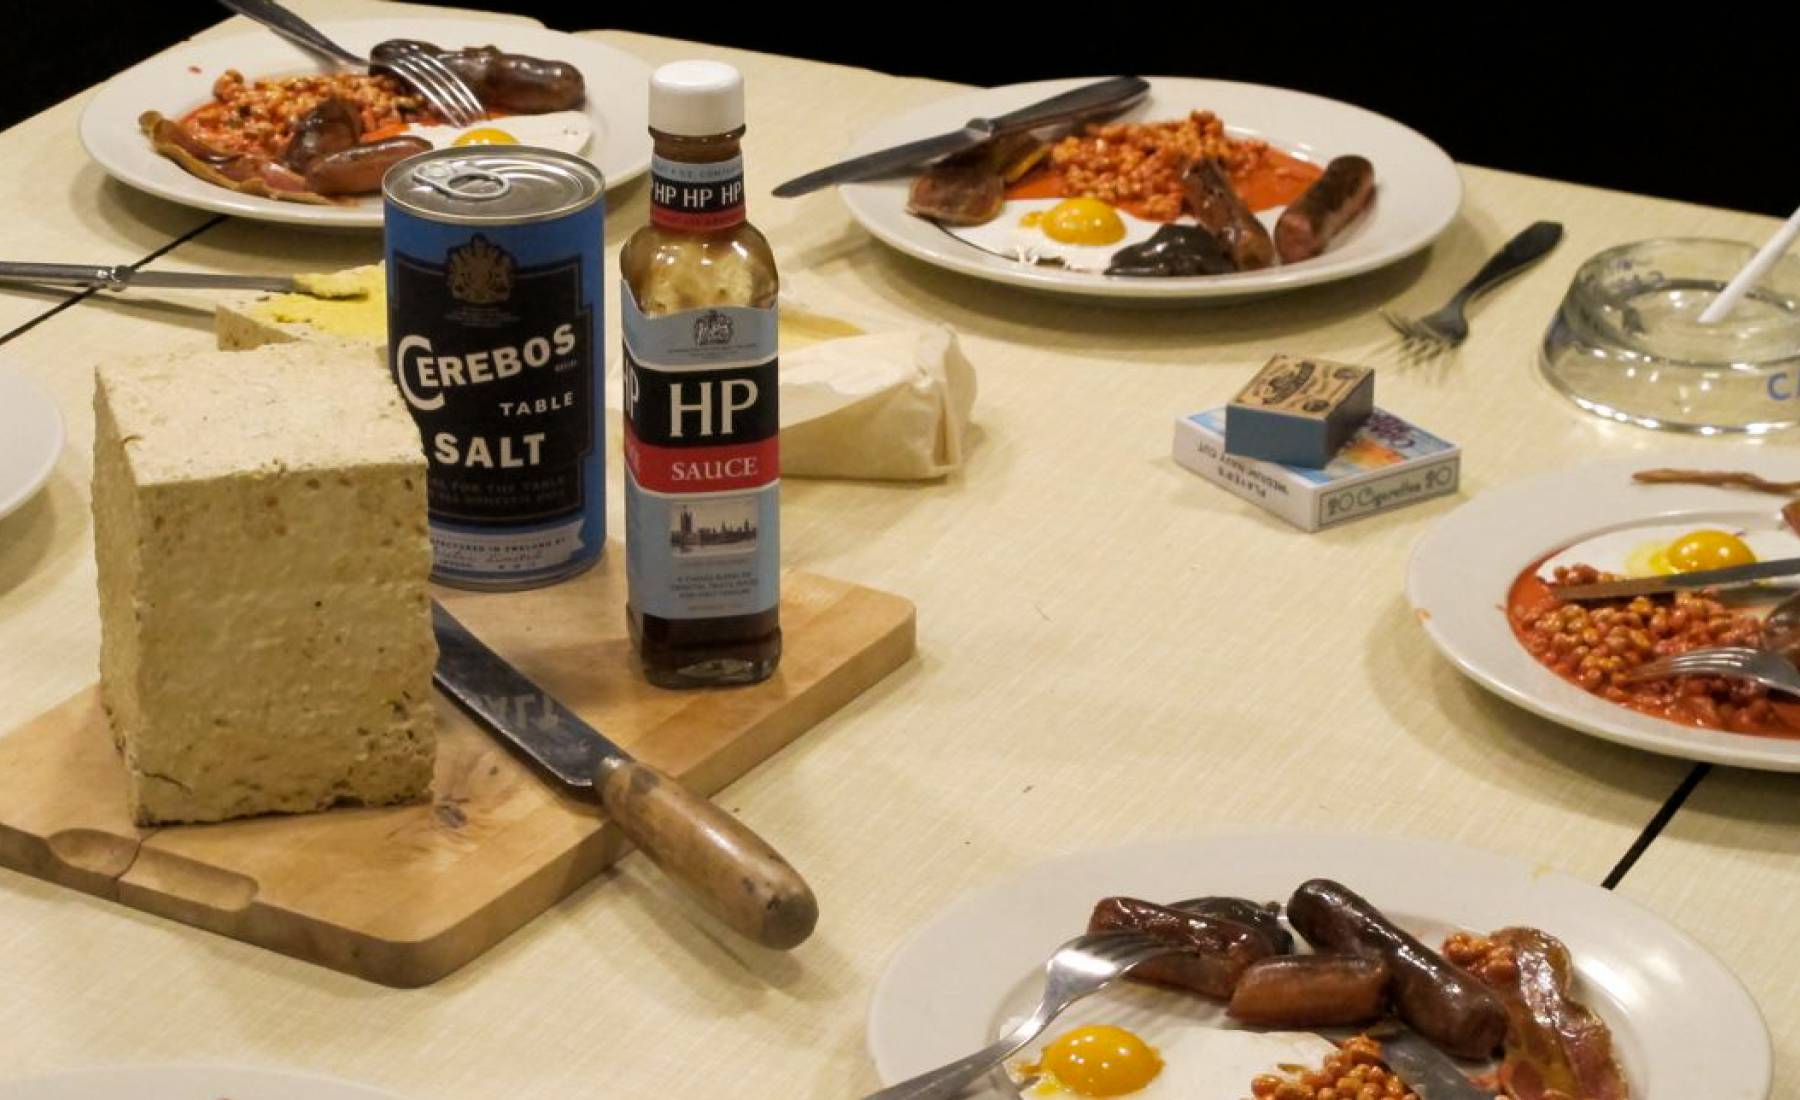 submarine realistic fake food, fried breakfasts on a table.1960's. bread, sausages, eggs, hp sauce, baked beans